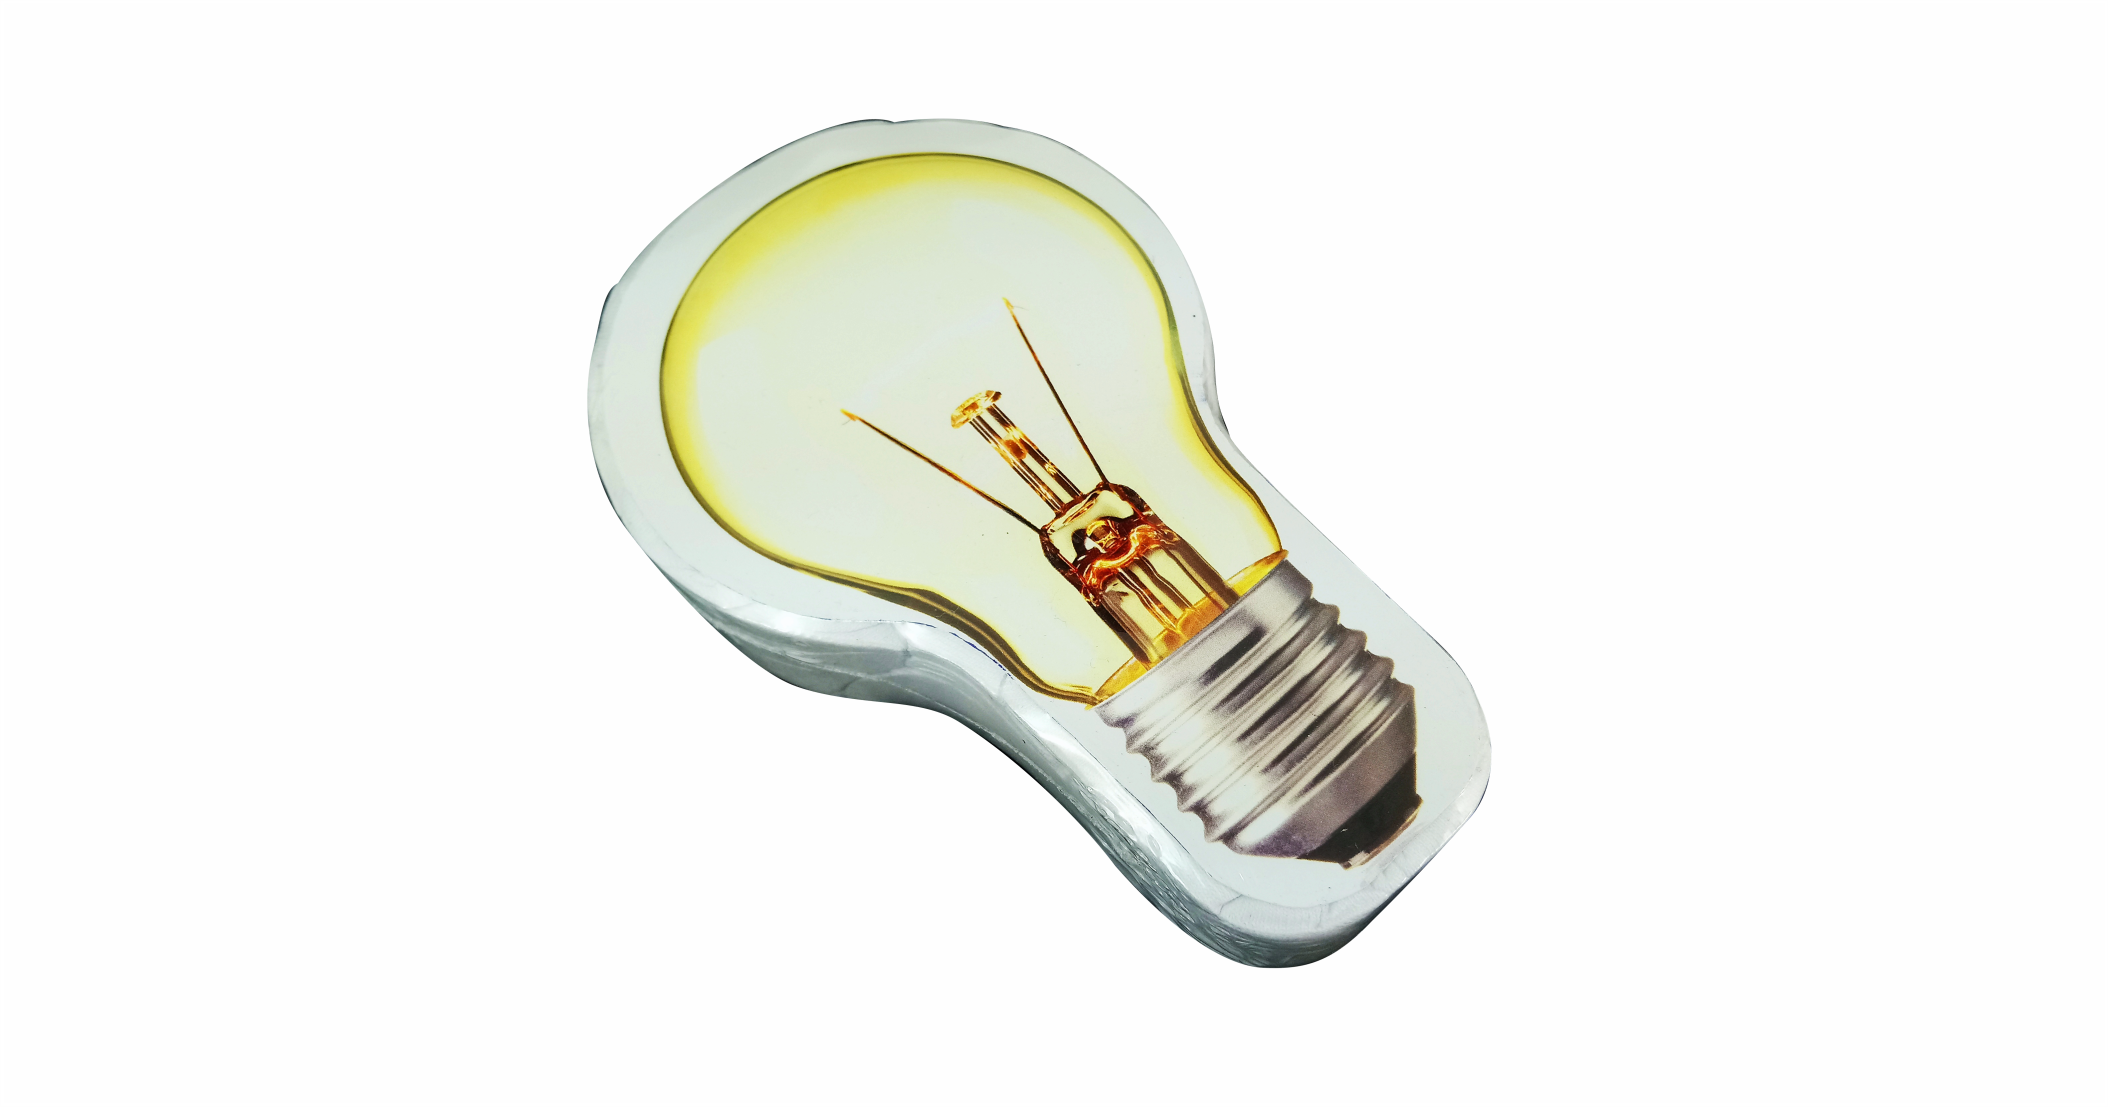 Compressed T Shirt light bulb 2